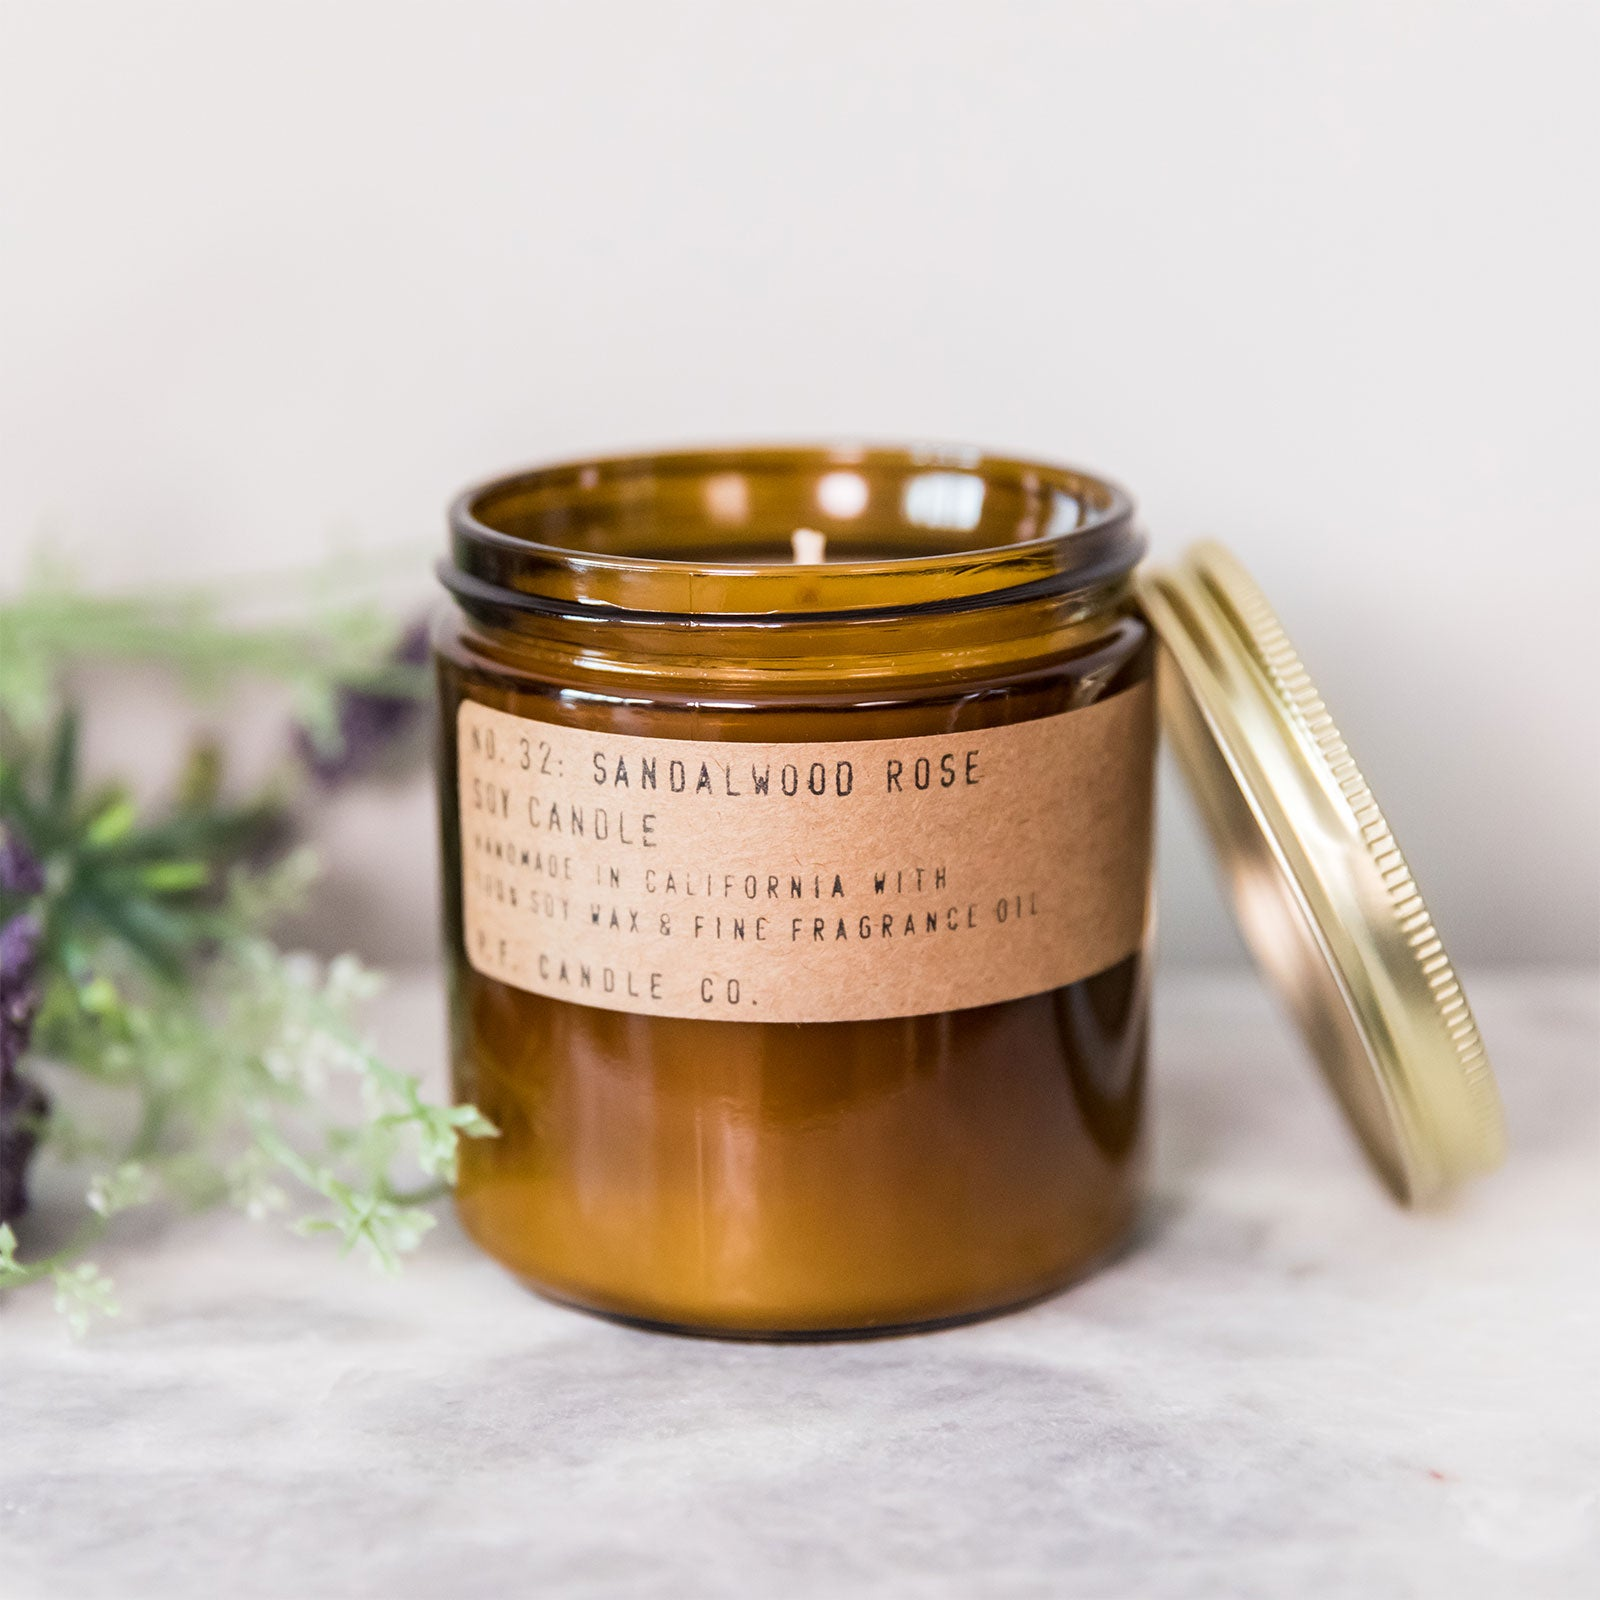 No. 32 Sandalwood Rose Soy Candle